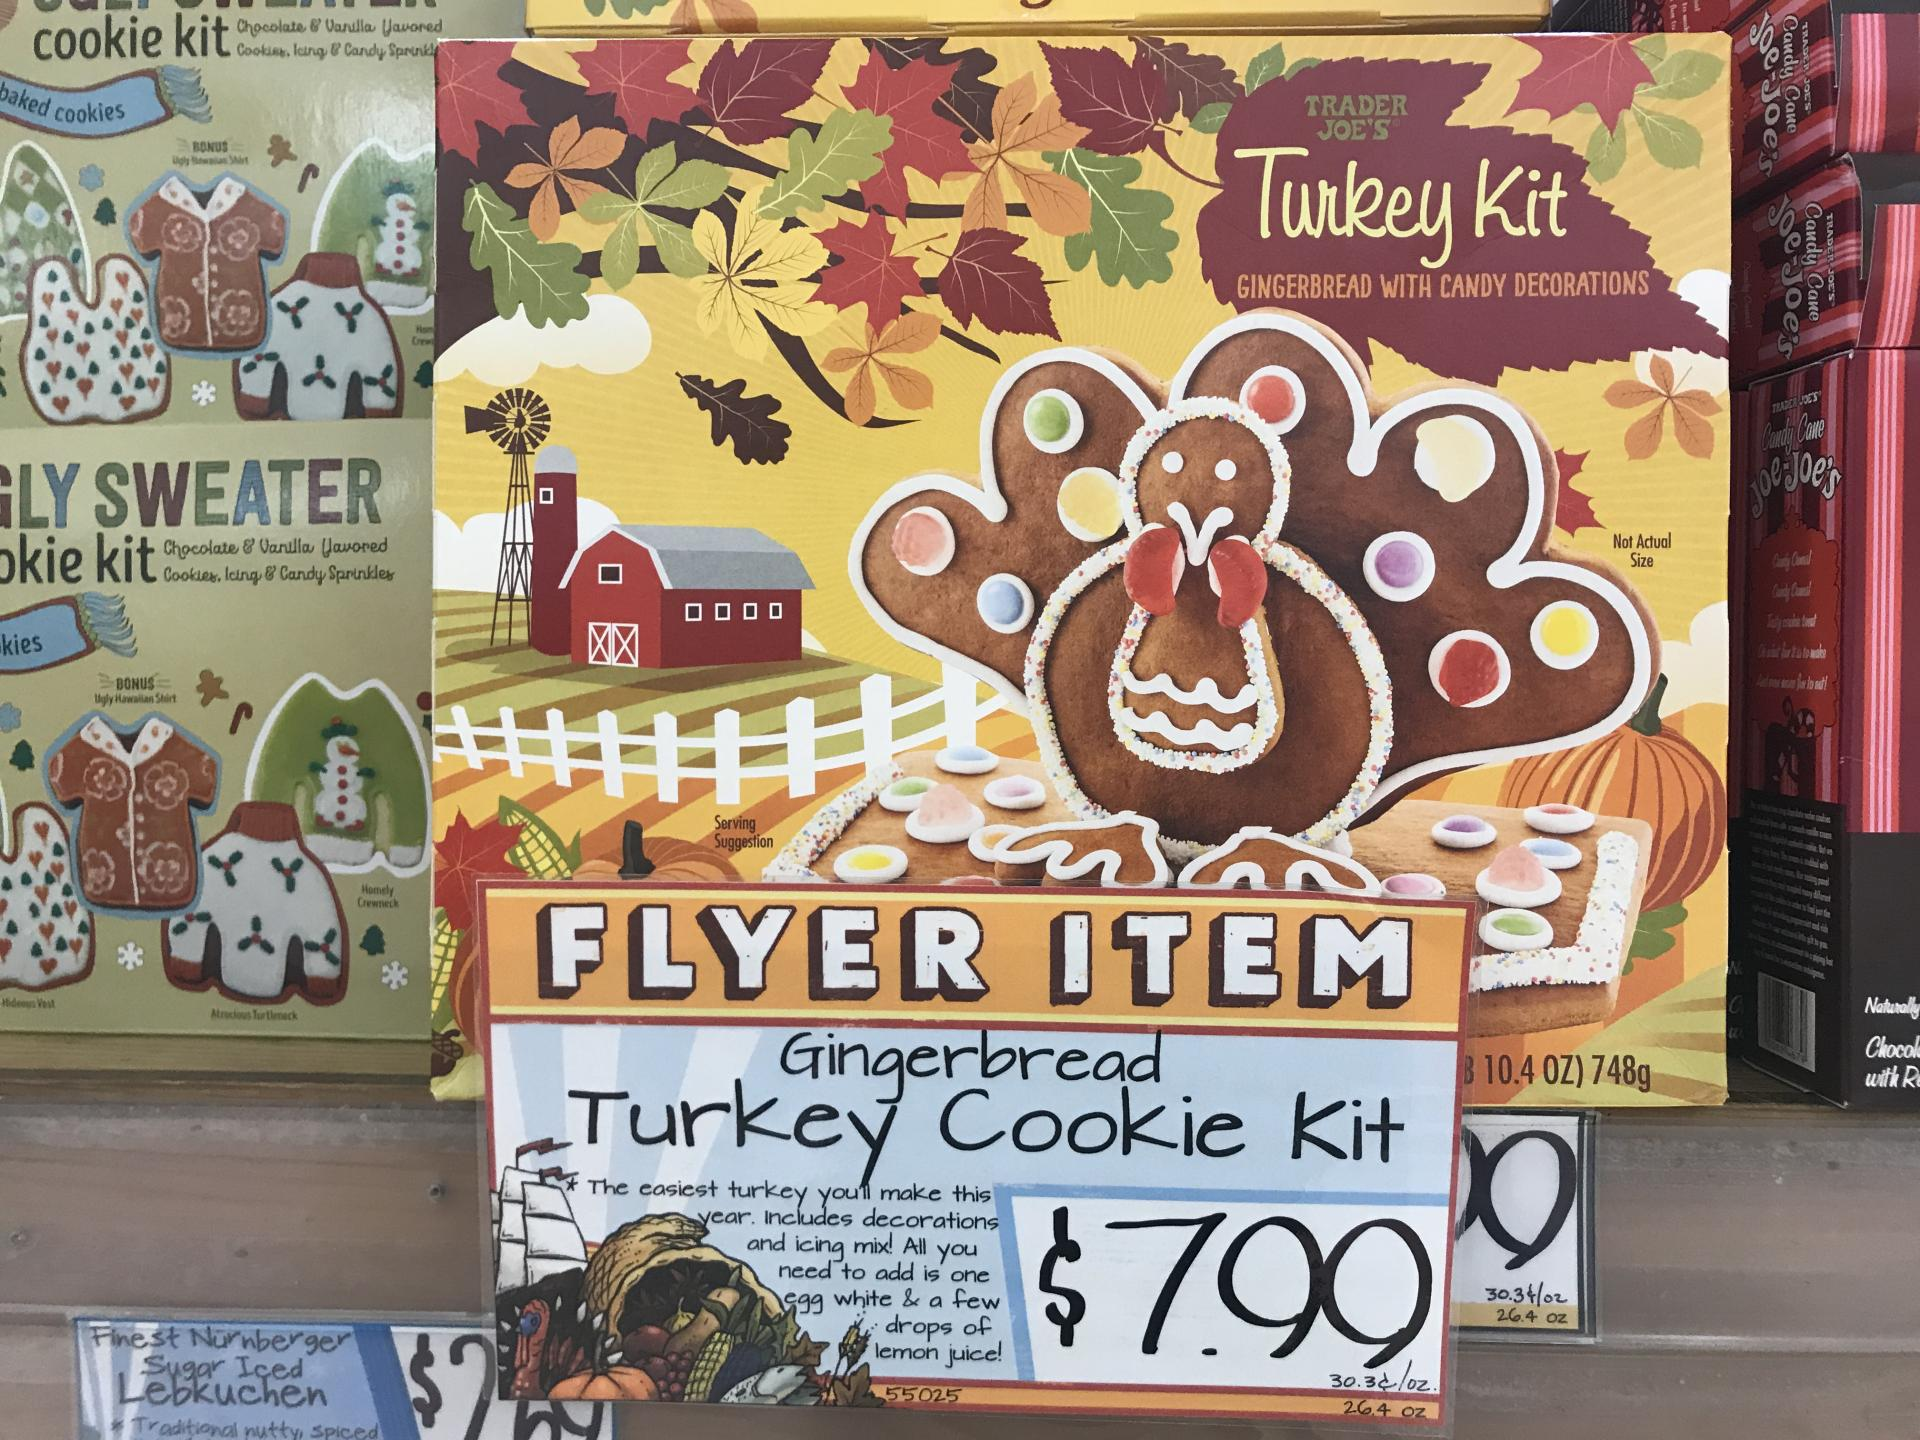 Best Trader Joes holiday products